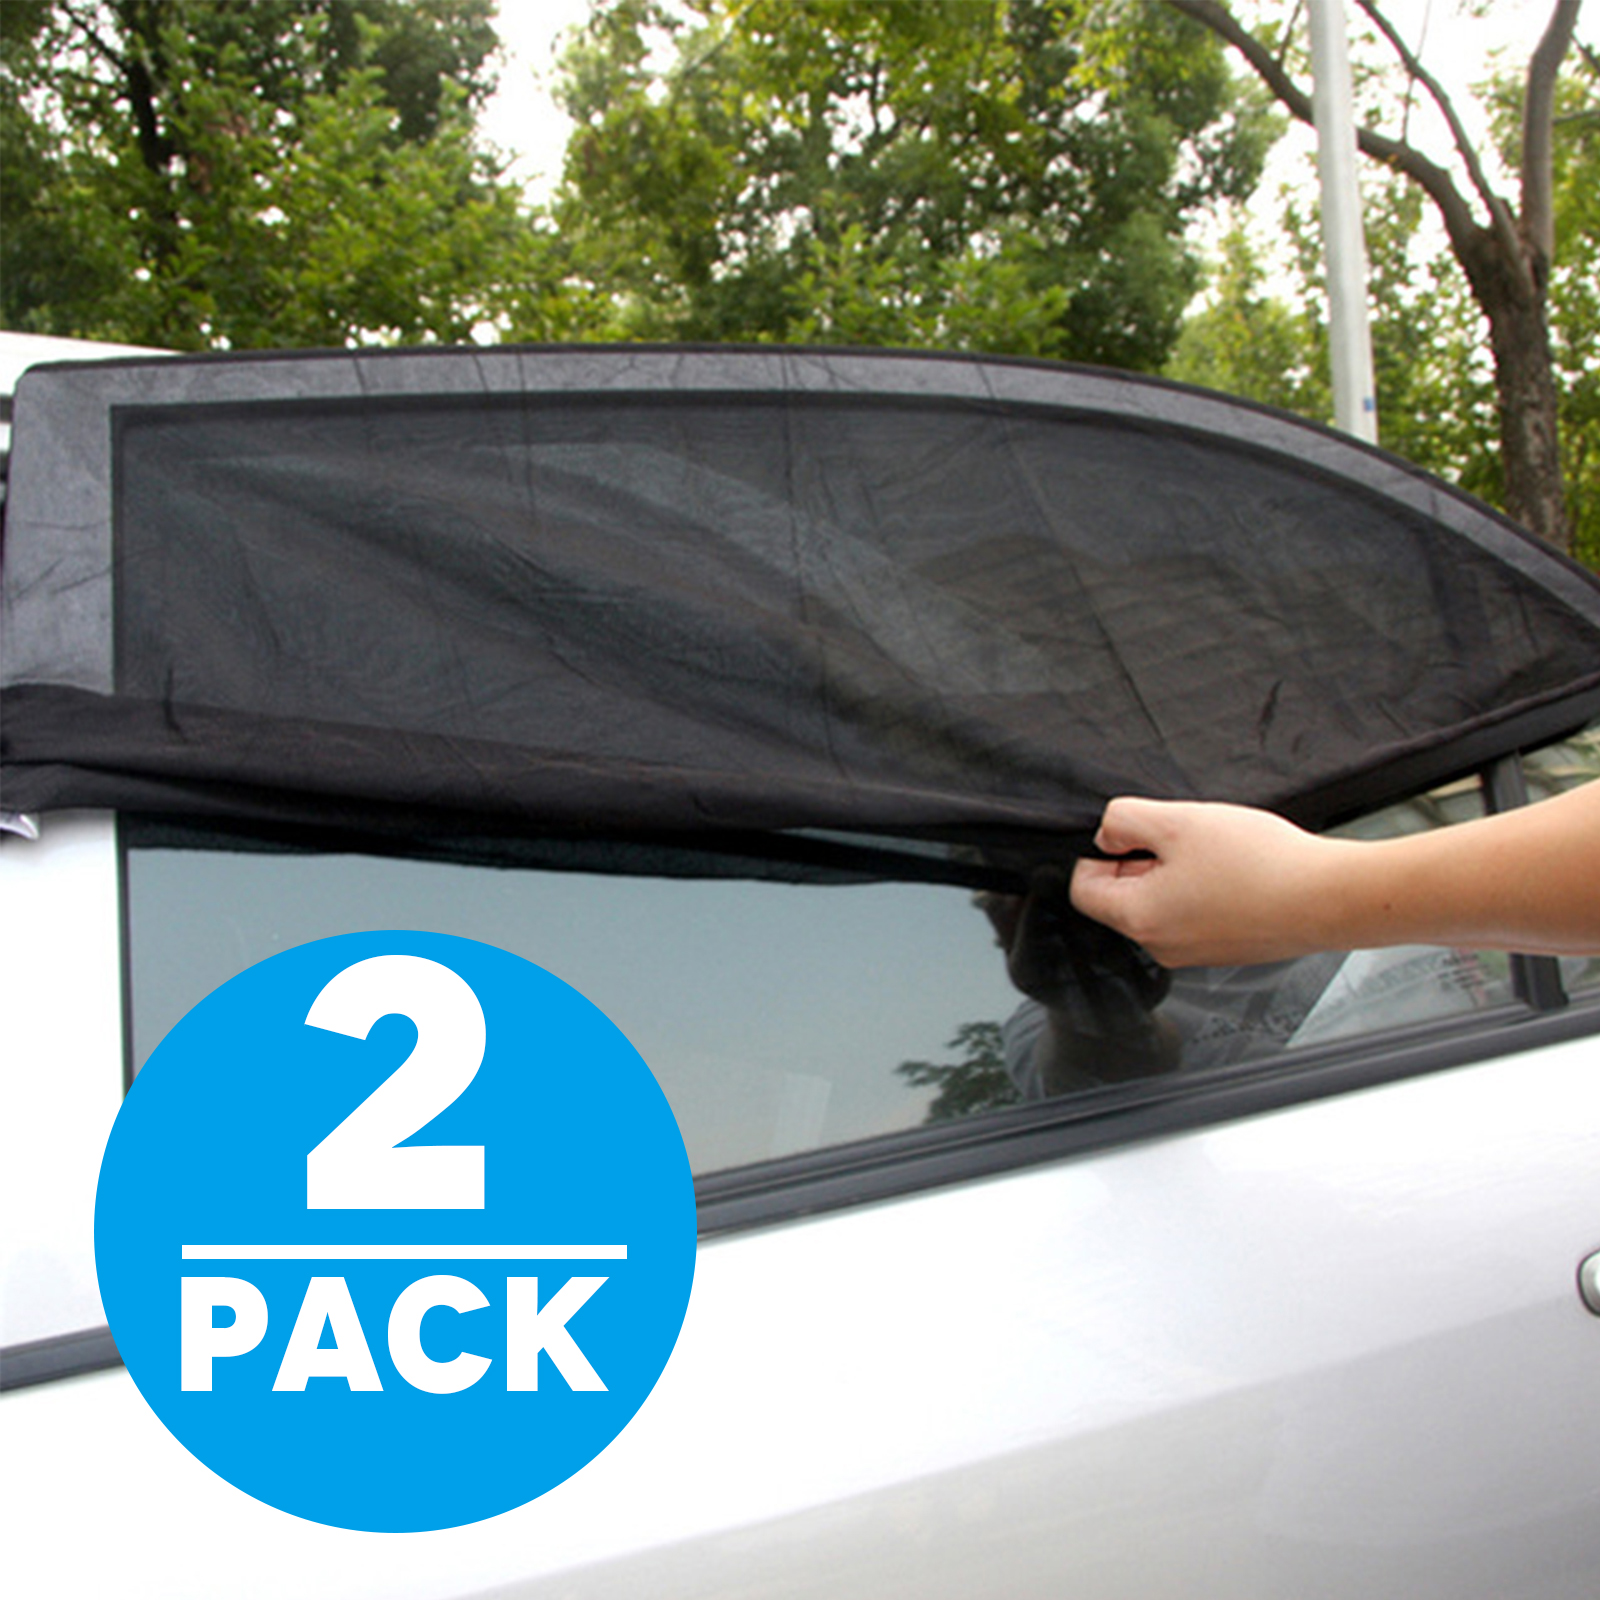 TSV 2-pack Car SUV Premium Rear Side Window Sun Visor Shade Mesh Cover Shield Sunshade UV Protector, Universal Fit Car Trucks and SUV etc.